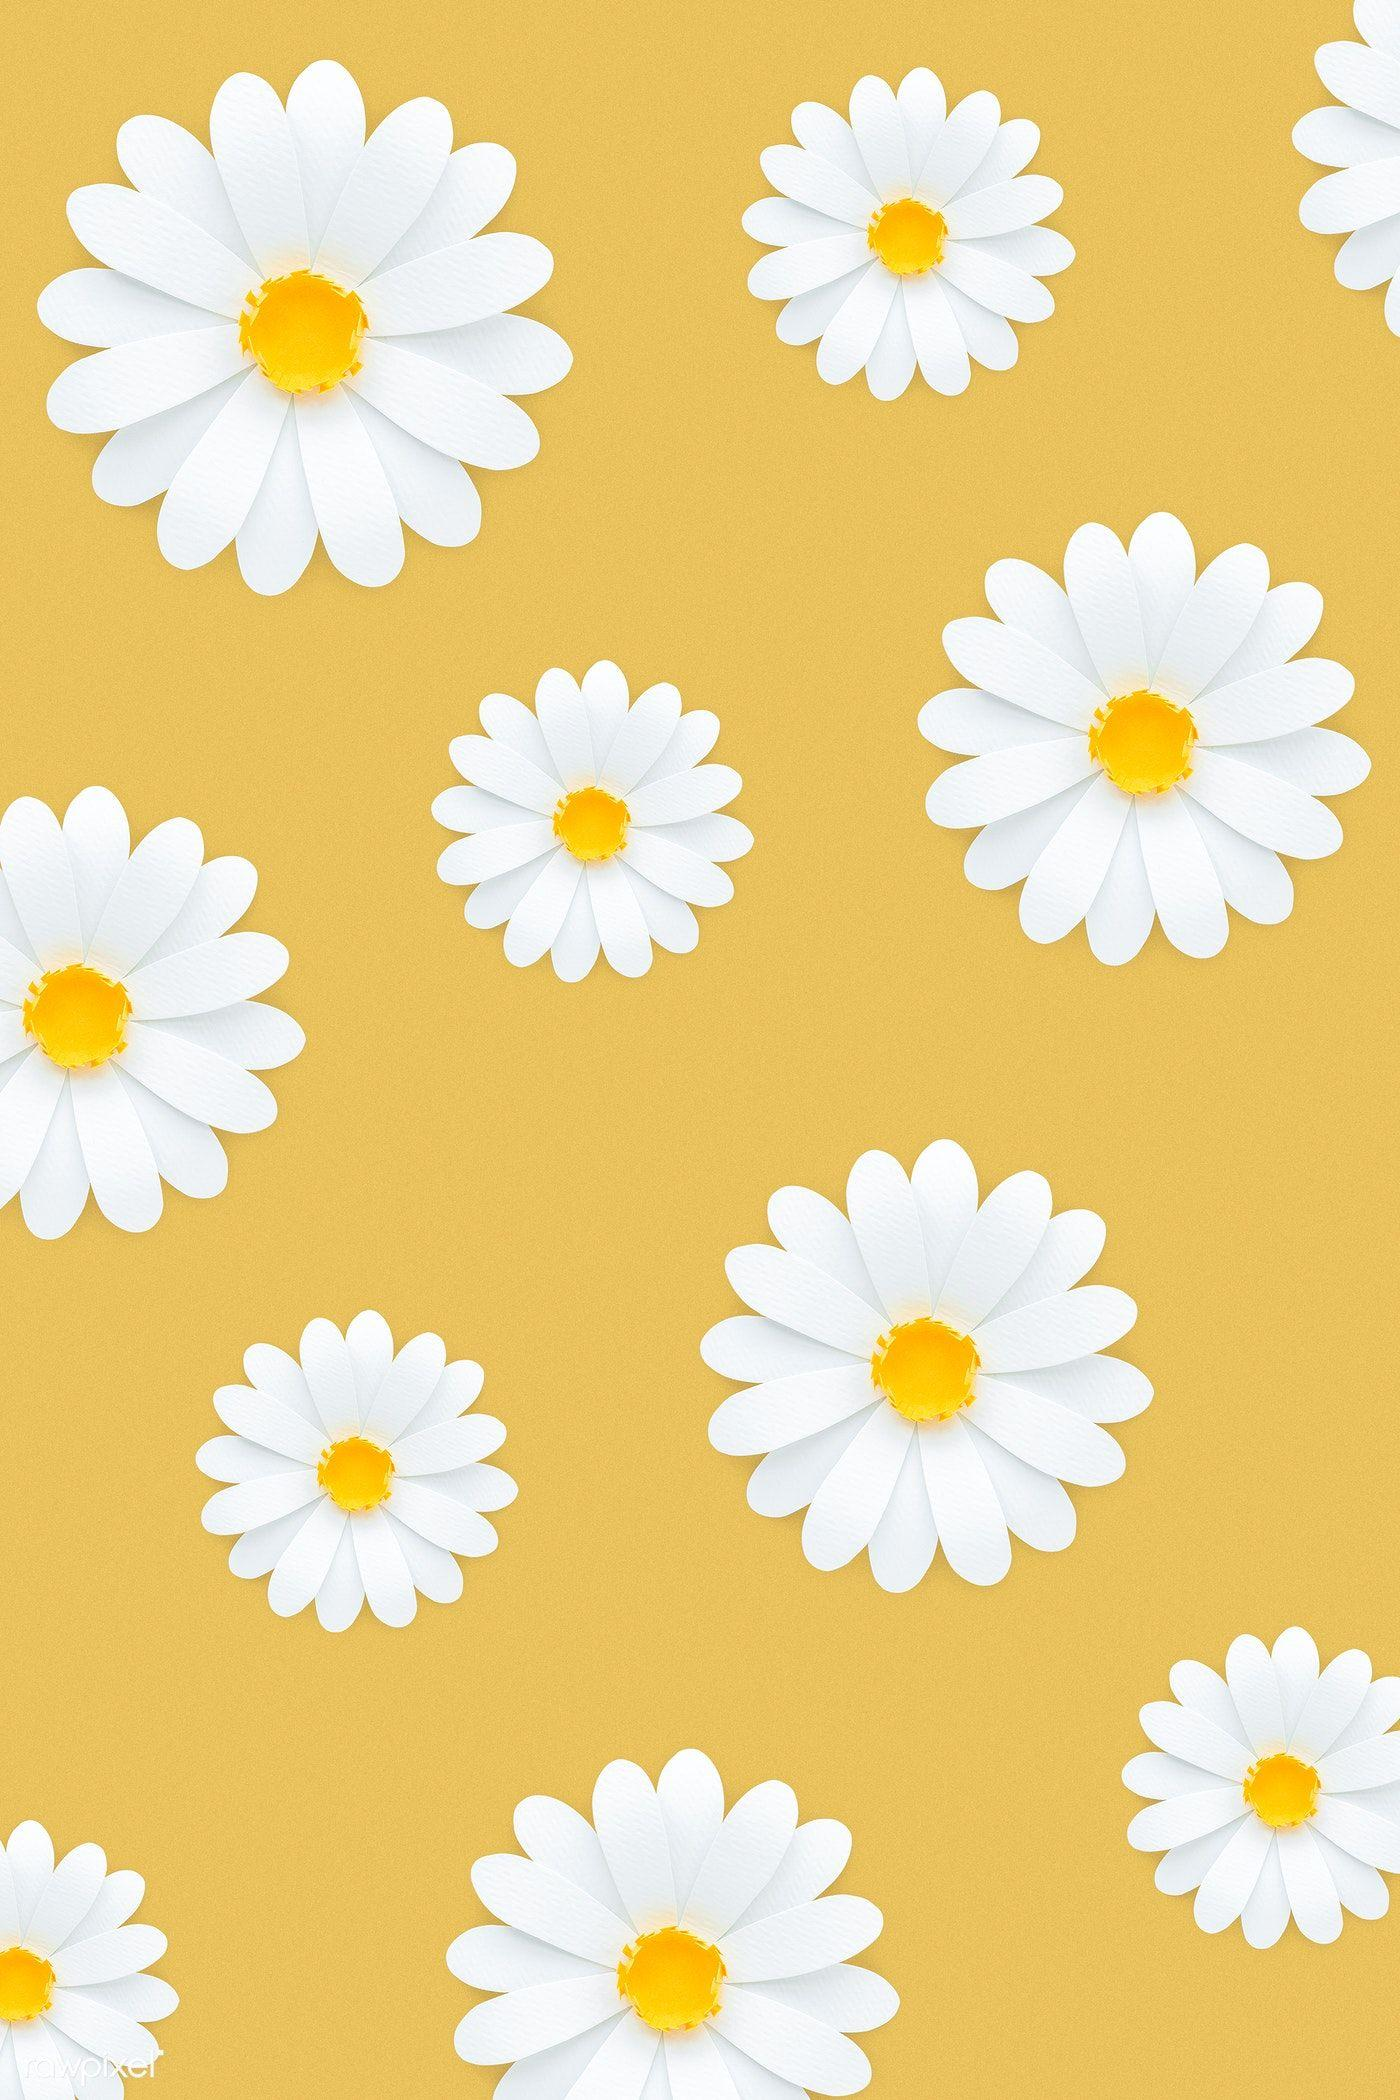 Cute Daisy Wallpapers - Wallpaper Cave